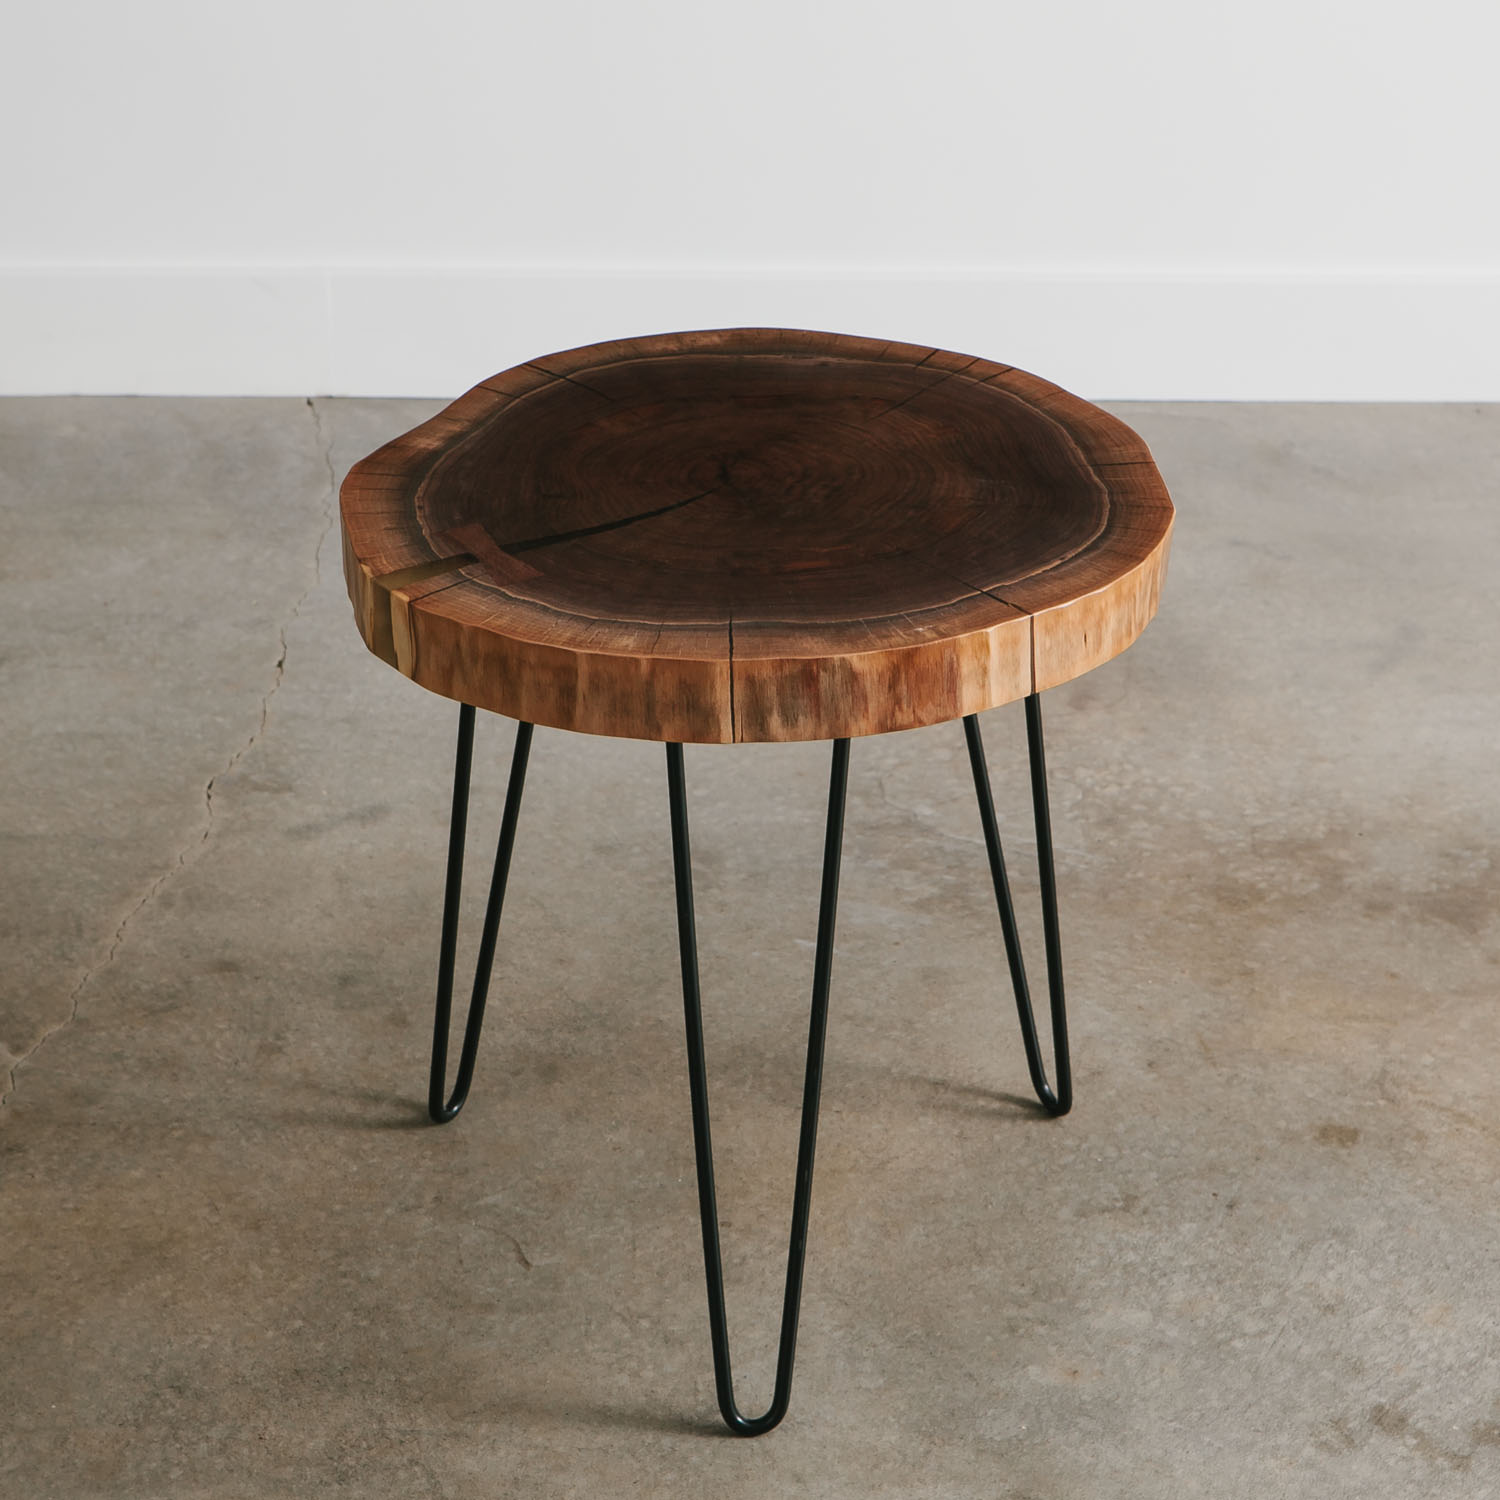 Charmant Walnut Side Table   Elko Hardwoods | Modern Live Edge Furniture   Dining U0026 Coffee  Tables, Desks, Benches